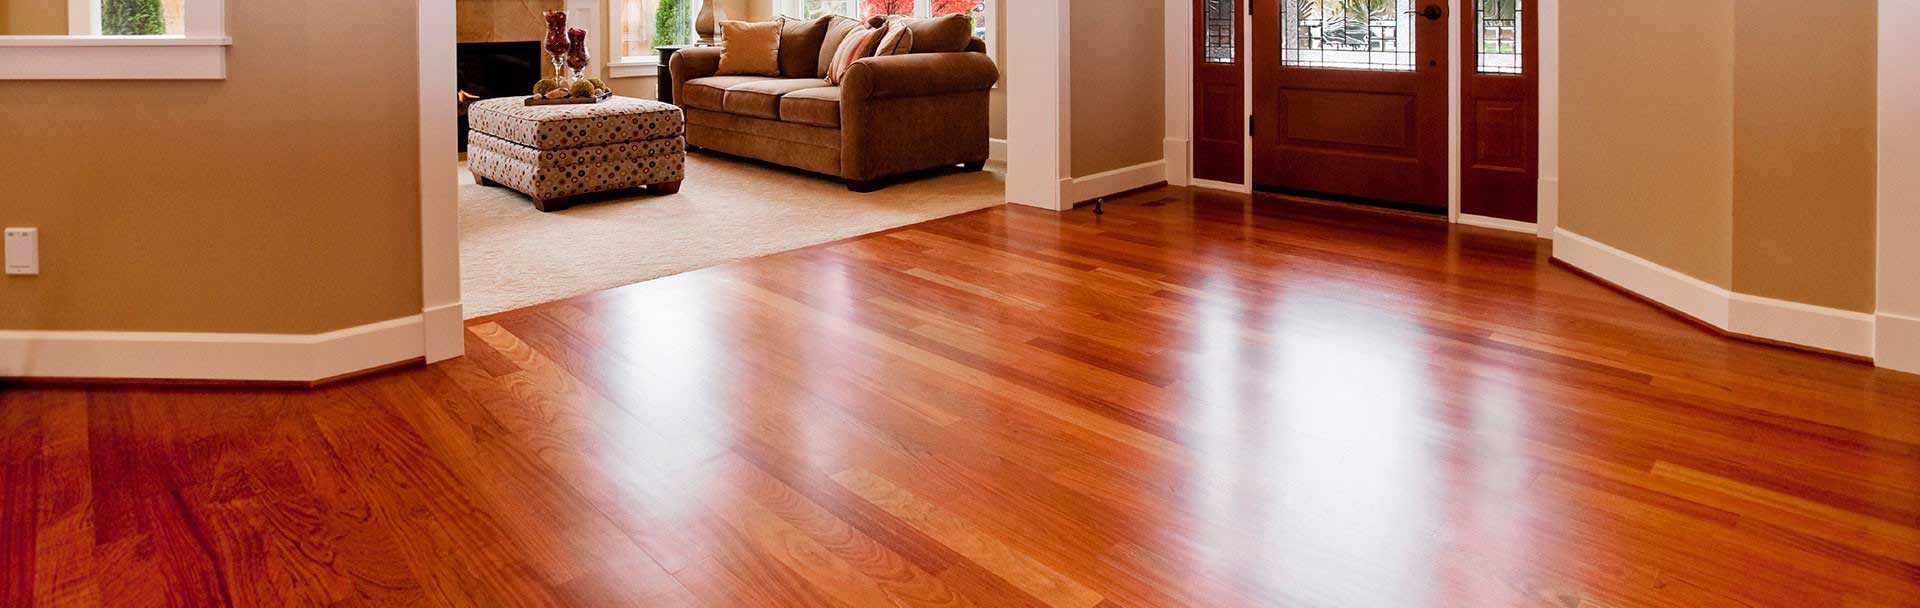 Hardwood floor refinishing Sunnyvale - Mountain View - Palo Alto - Saratoga - Menlo Park and surounding South Bay Areas